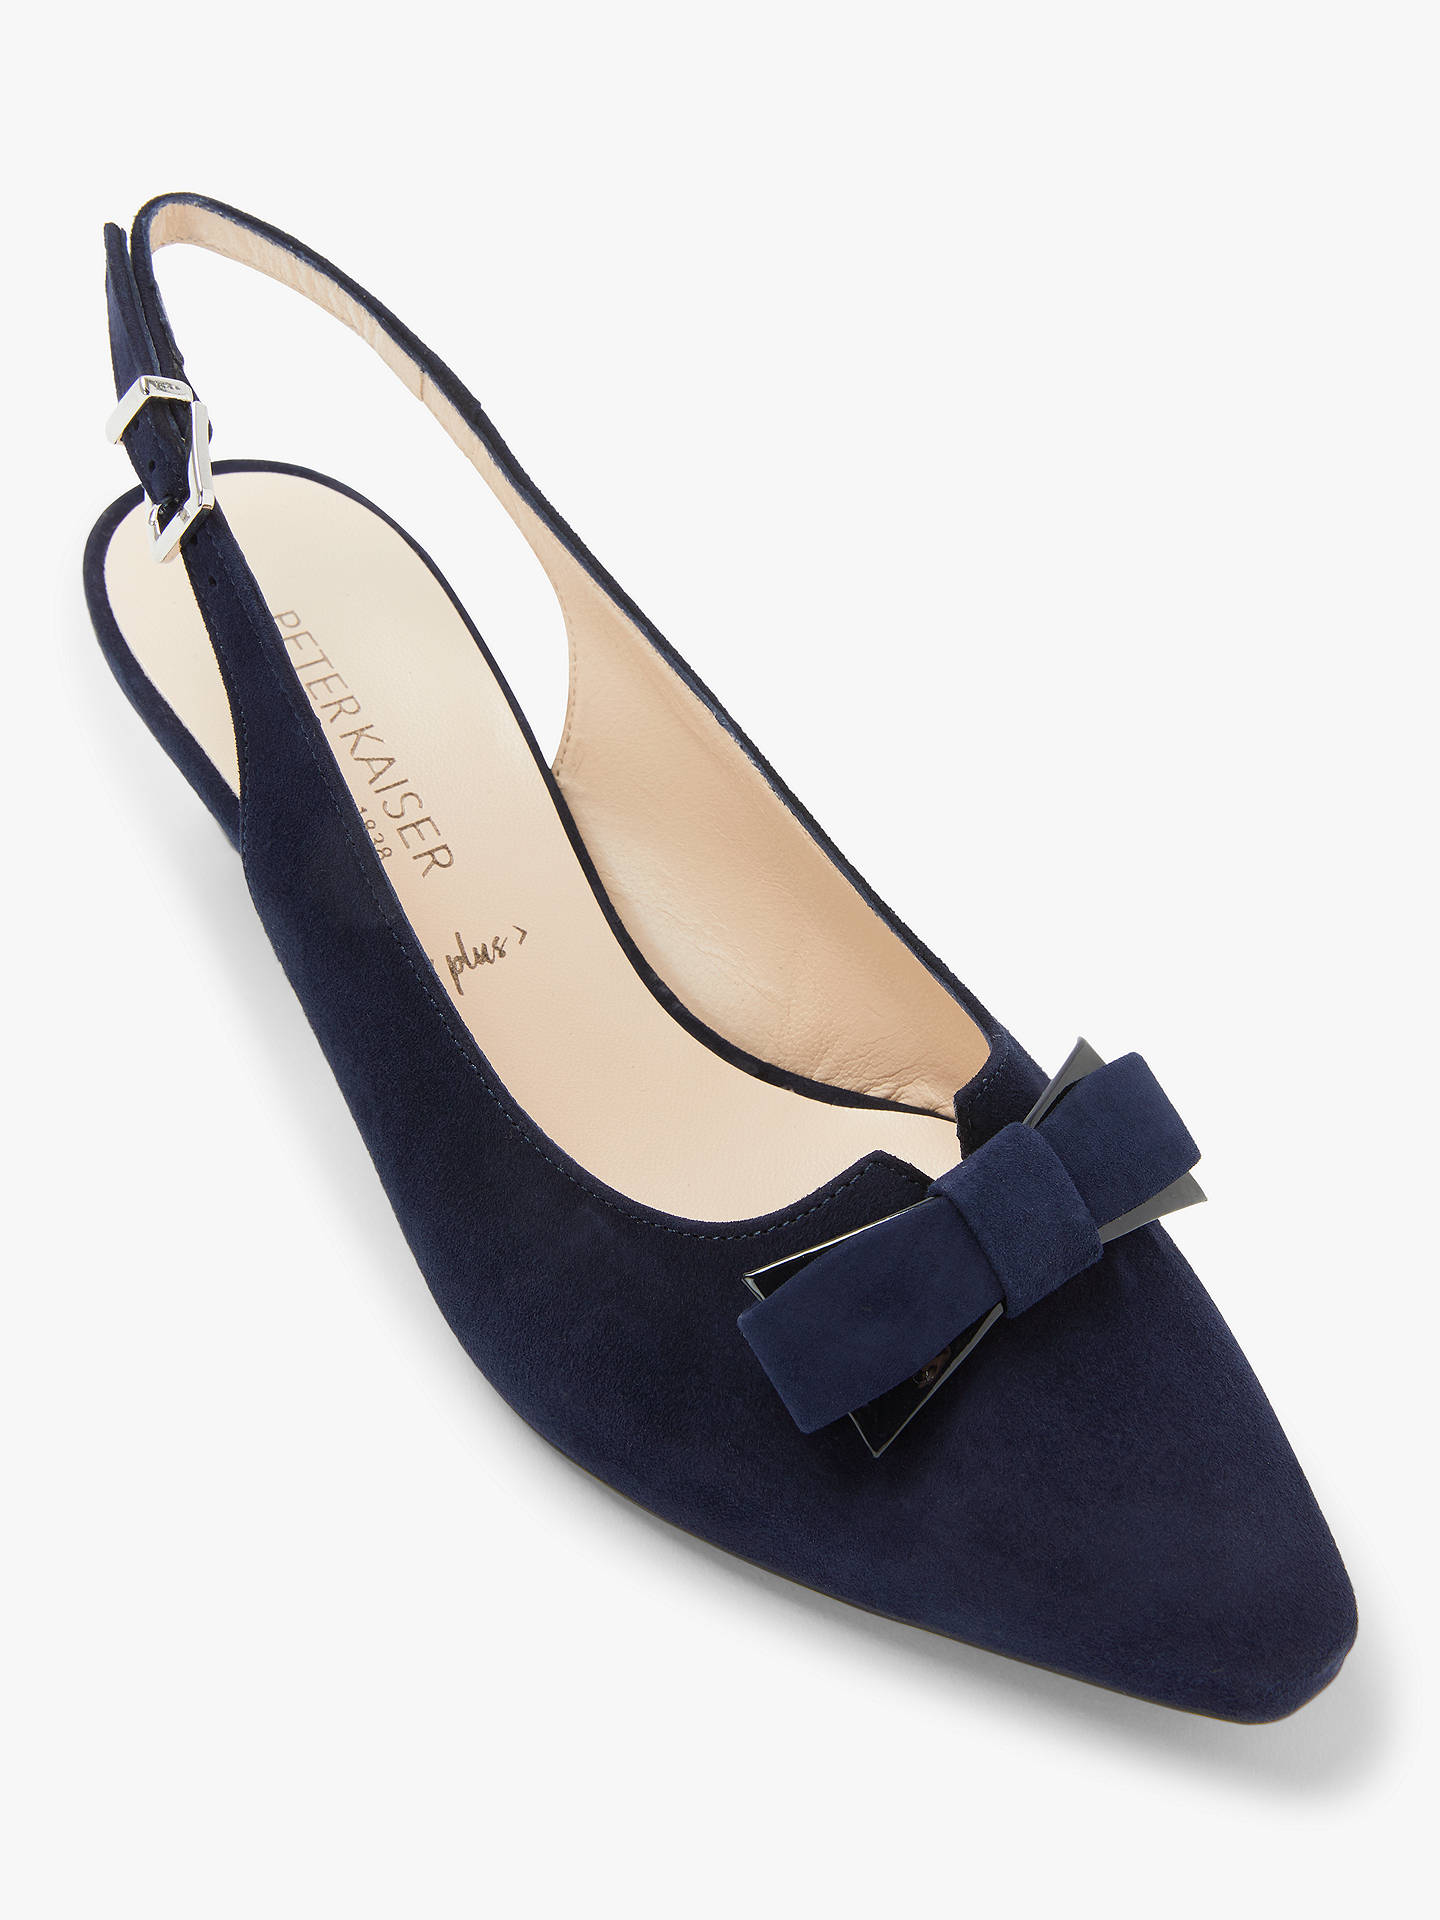 40d9047d55d ... Buy Peter Kaiser Sona Bow Cone Heel Slingback Court Shoes